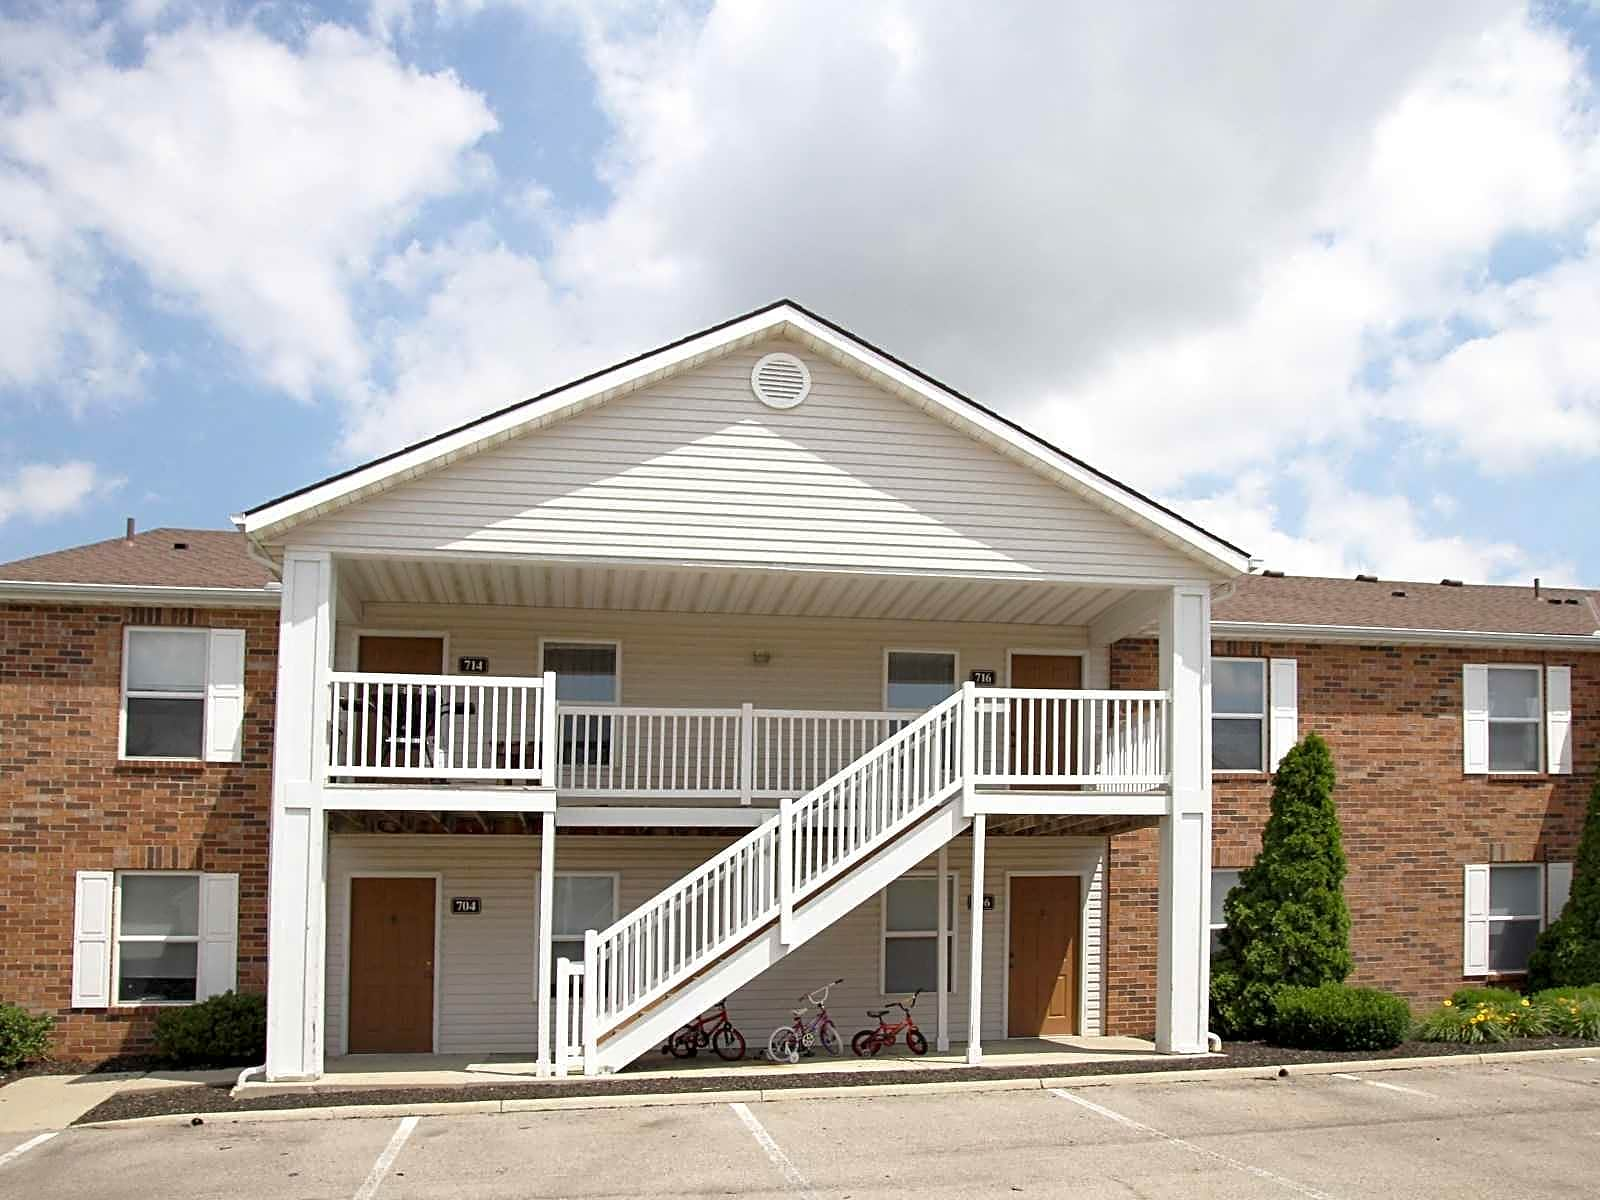 Photo: Marysville Apartment for Rent - $749.00 / month; 1 Bd & 1 Ba